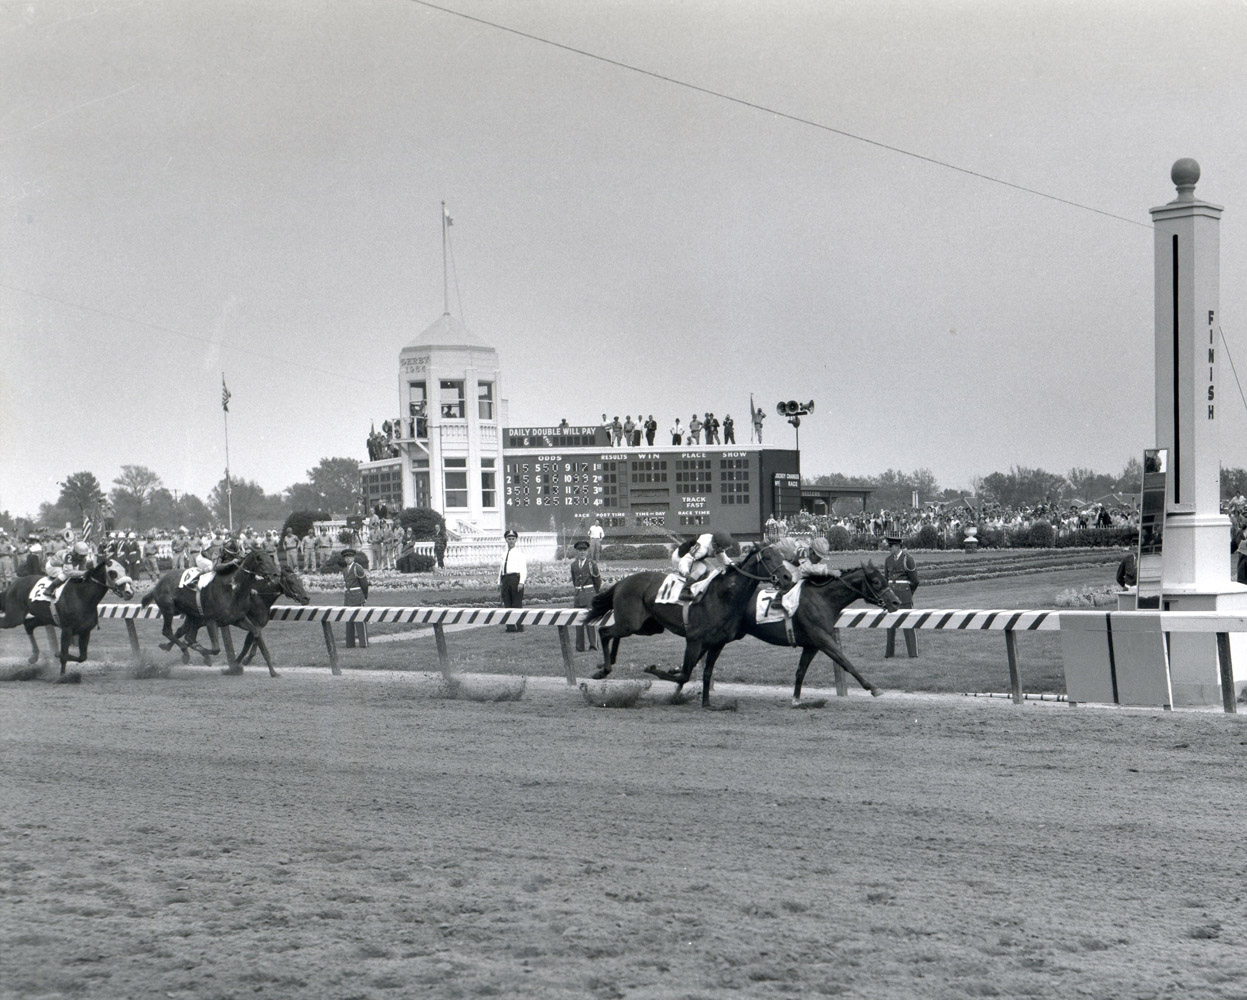 Bill Hartack and Northern Dancer winning the 1964 Kentucky Derby (Churchill Downs Inc./Kinetic Corp. /Museum Collection)